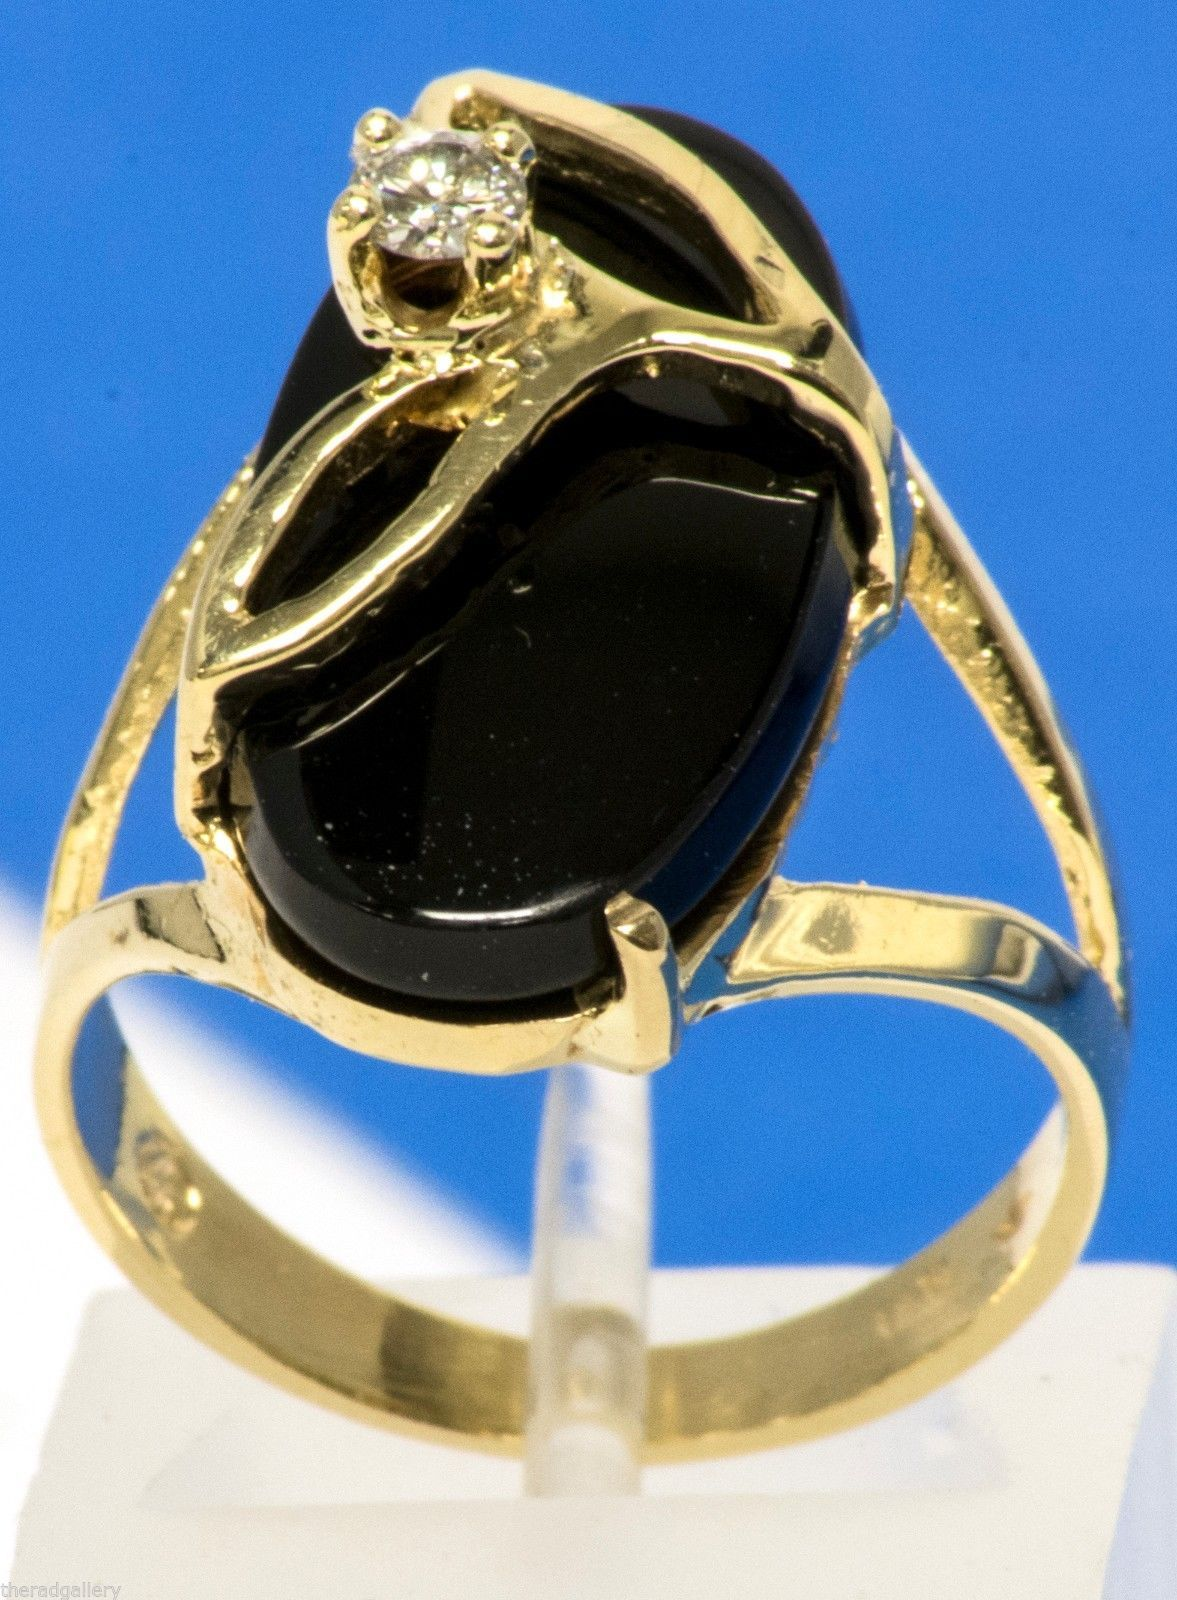 Primary image for Vintage 14K Yellow Gold Ring with Large Onyx Stone & Diamond Size 5.25 4.4g